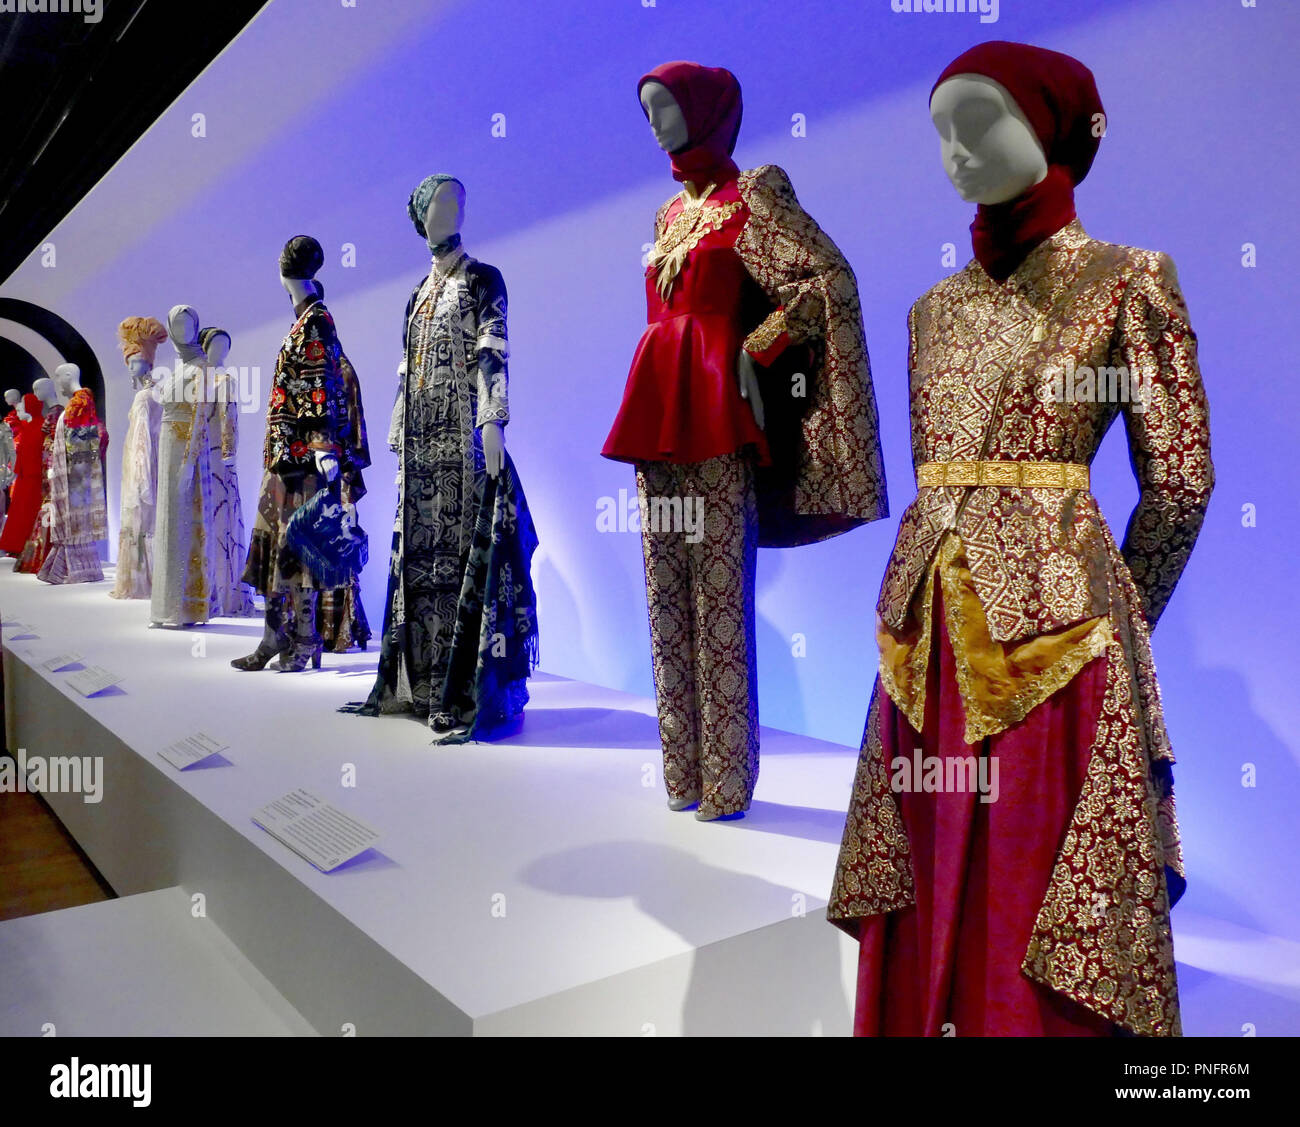 San Francisco Usa 20th Sep 2018 Garments By Muslim Designers From Southeast Asia Are On Display In The De Young Art Museum The Market For Muslim Fashion Is Growing The World Is